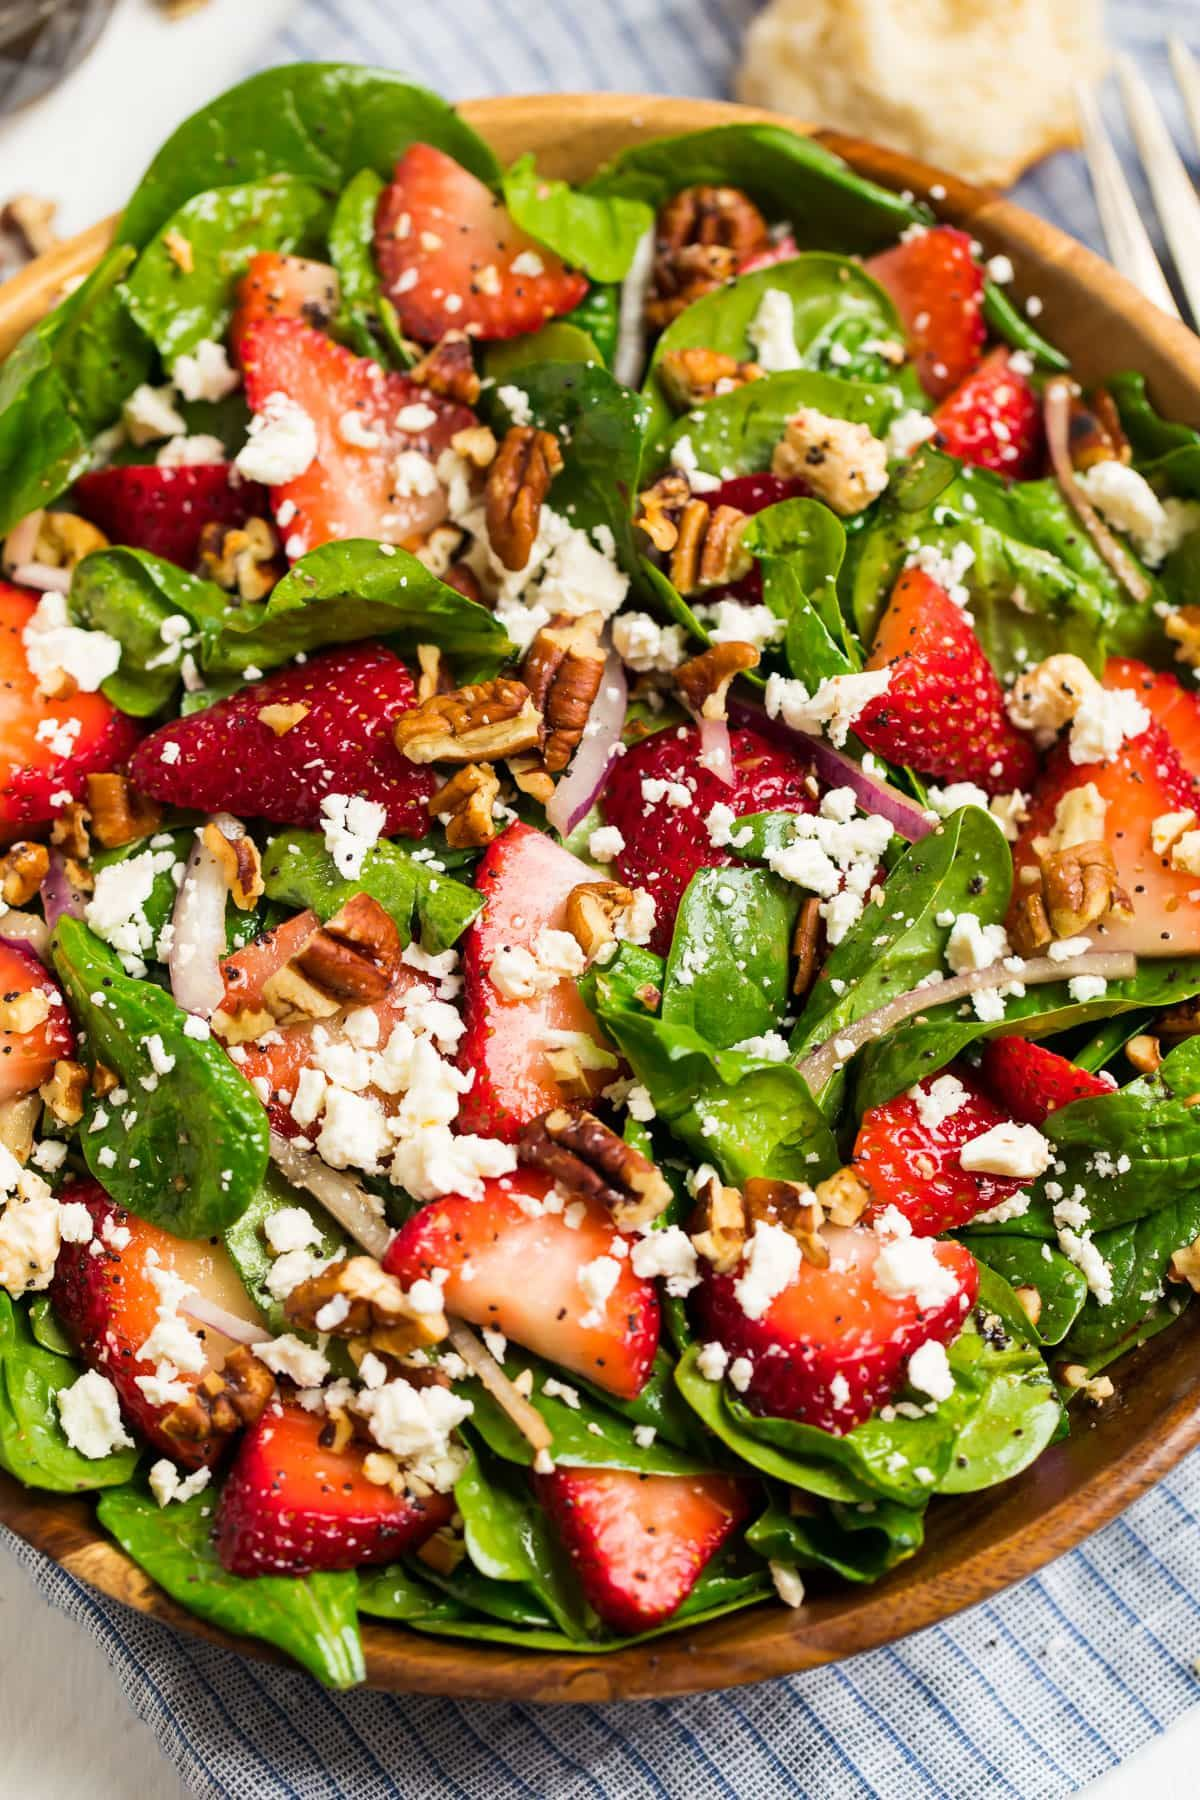 Spinach Strawberry Salad with Balsamic Poppy Seed Dressing